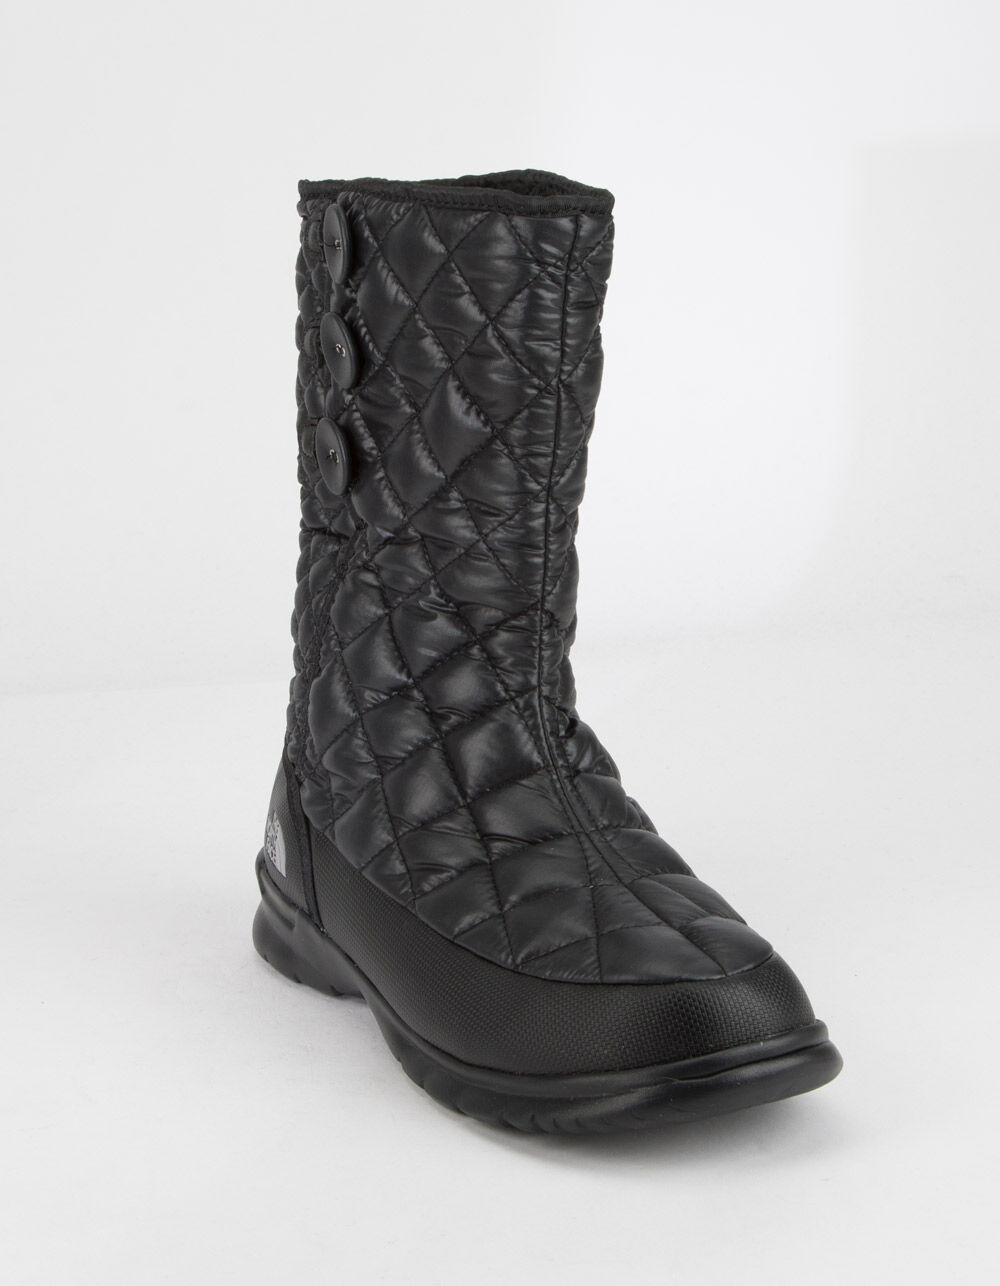 THE NORTH FACE Thermoball Button-Up Black Boots